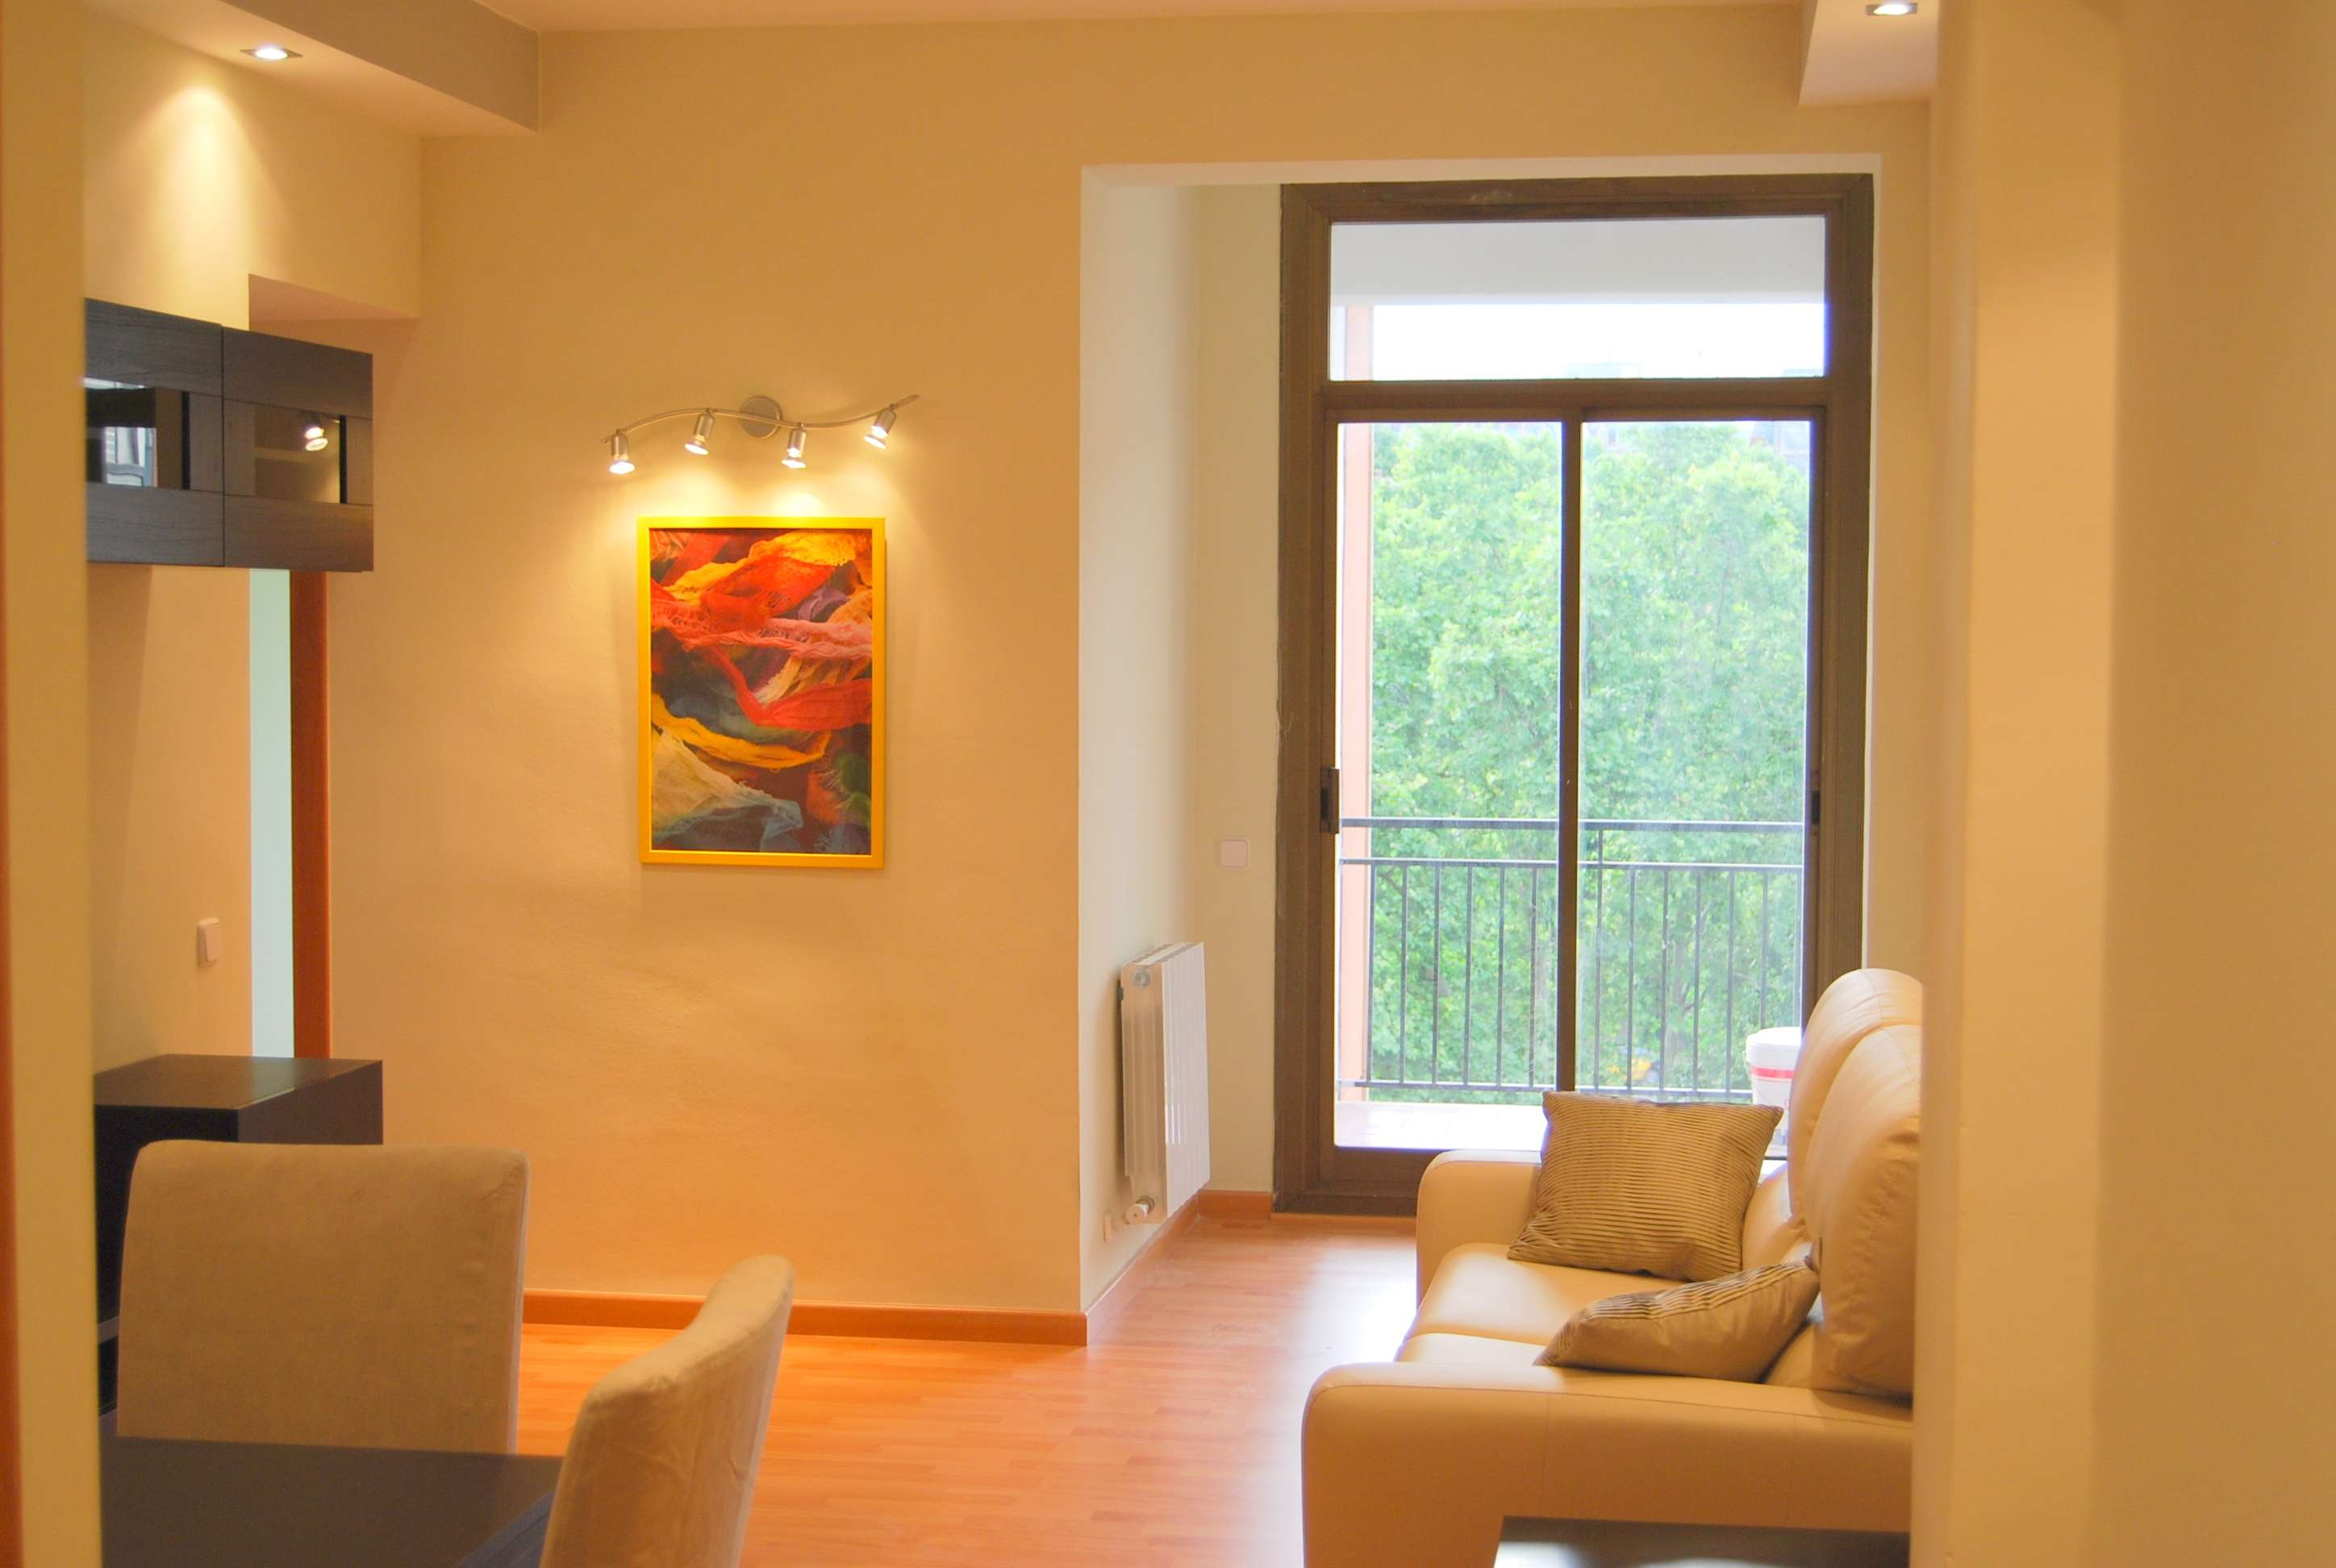 Two-bedroom flat with park view in Navas, Barcelona